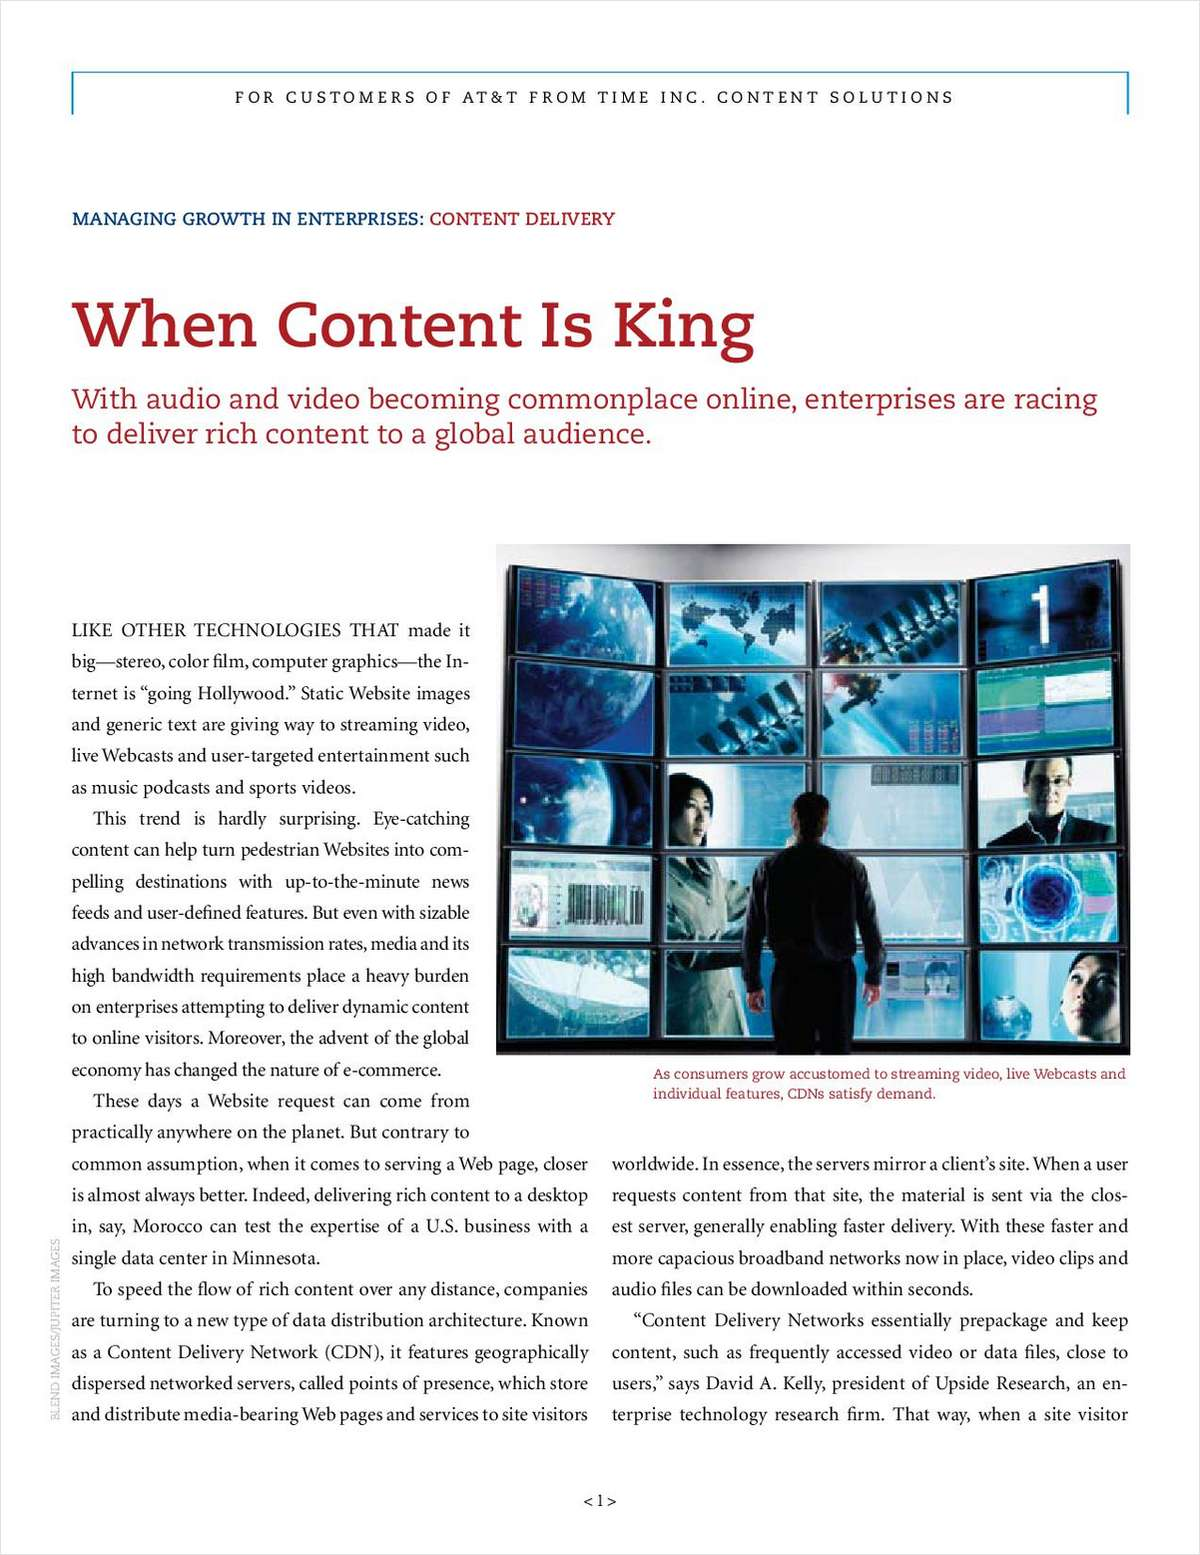 When Content Is King